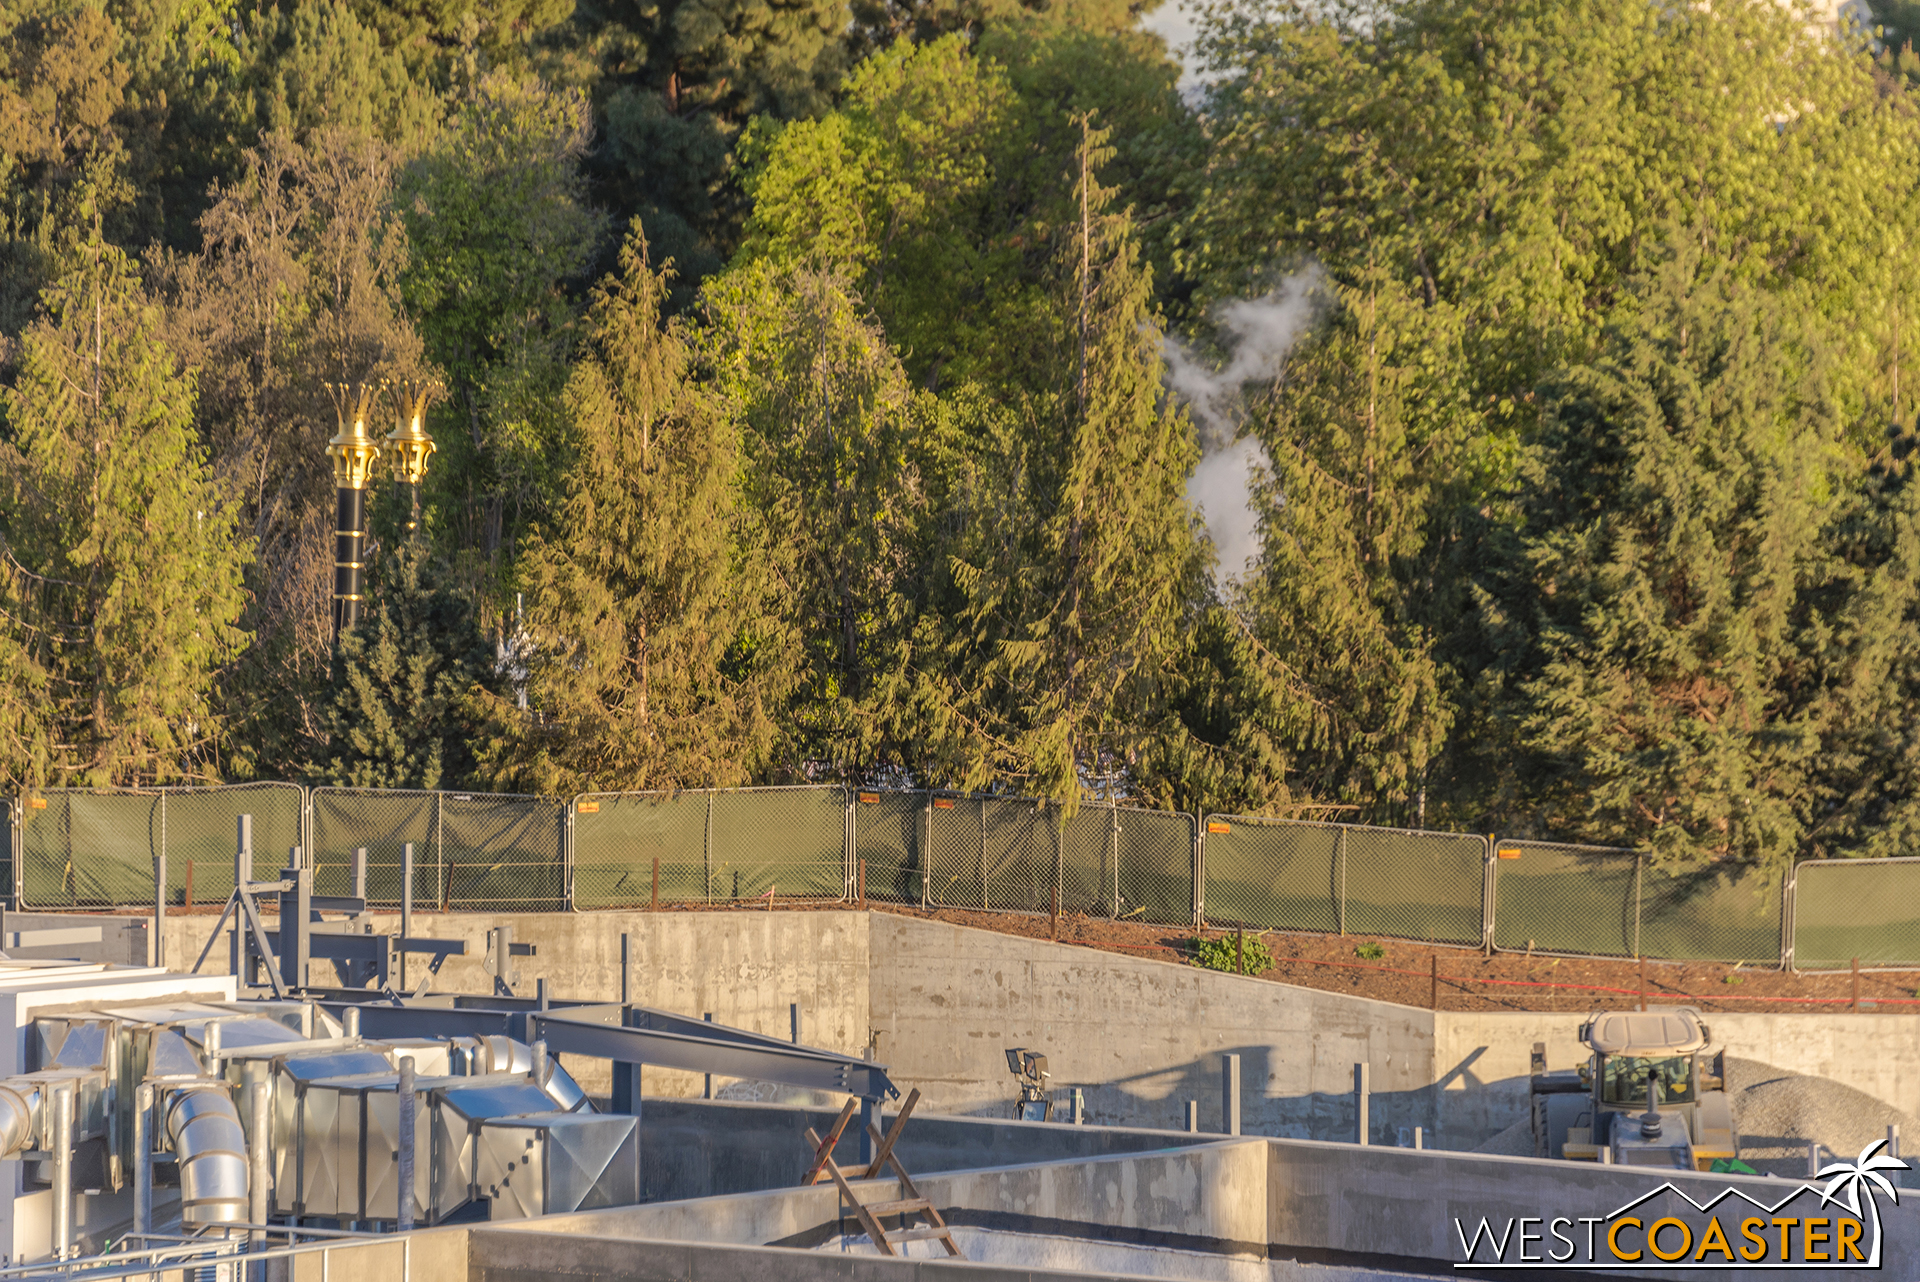 At some point, they're bound to start work on the Rivers of America side of Star Wars: Galaxy's Edge.